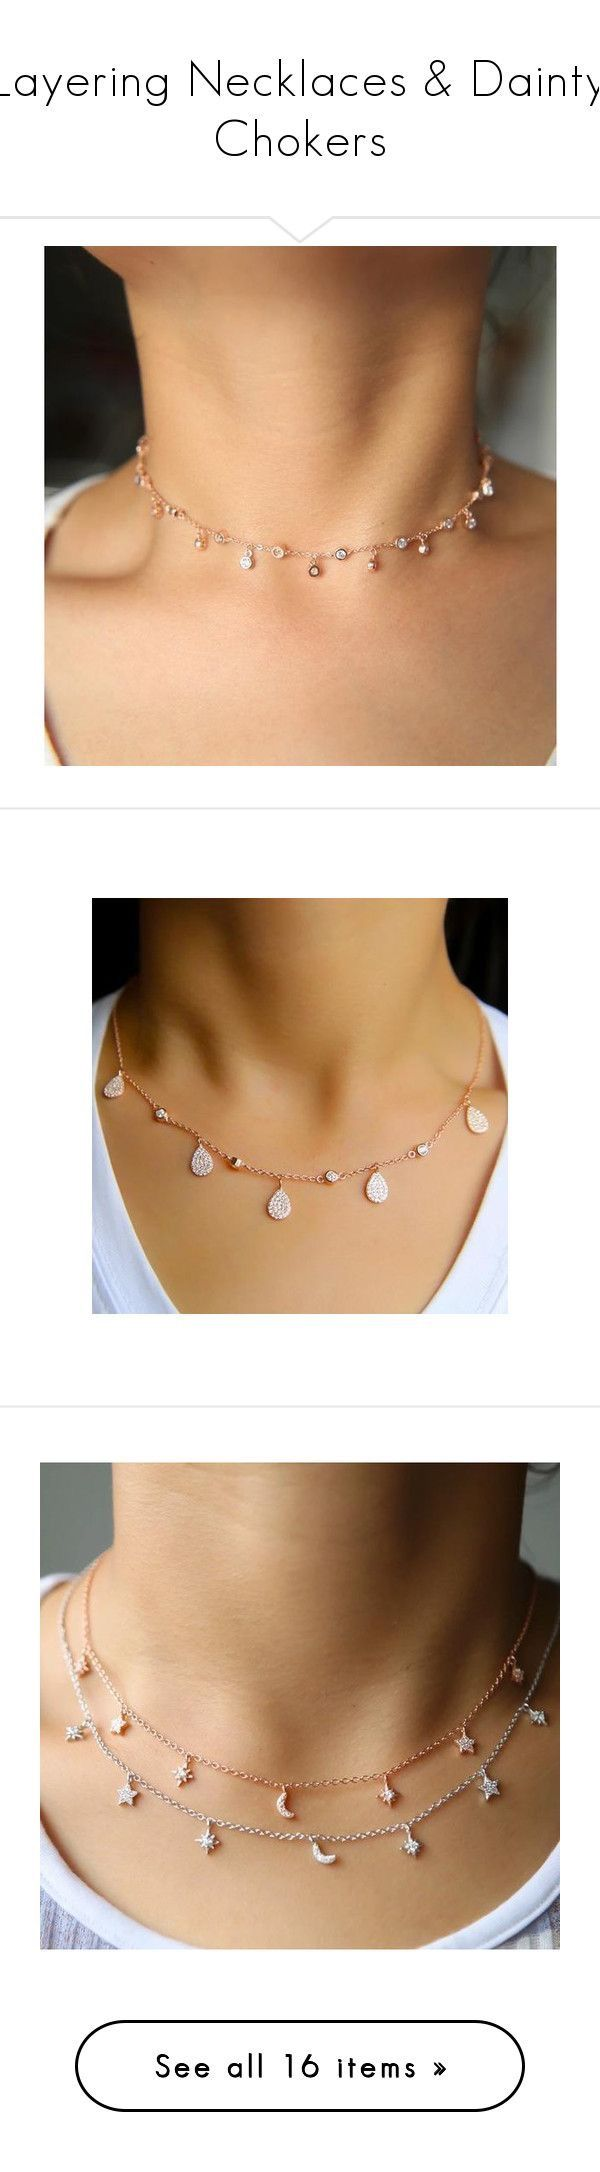 Layering Necklaces & Dainty Chokers featuring Body Kandy Couture on Polyvore. Delicate diamond Luna choker,dainty jewelry, necklace women's charm necklace, dangle charms, moon star jewelry necklace, diamond drop choker, double layer necklace, multi layer necklace,long chain necklaces gold bar necklace y necklace,lariat necklace. Jewelry gifts for women.